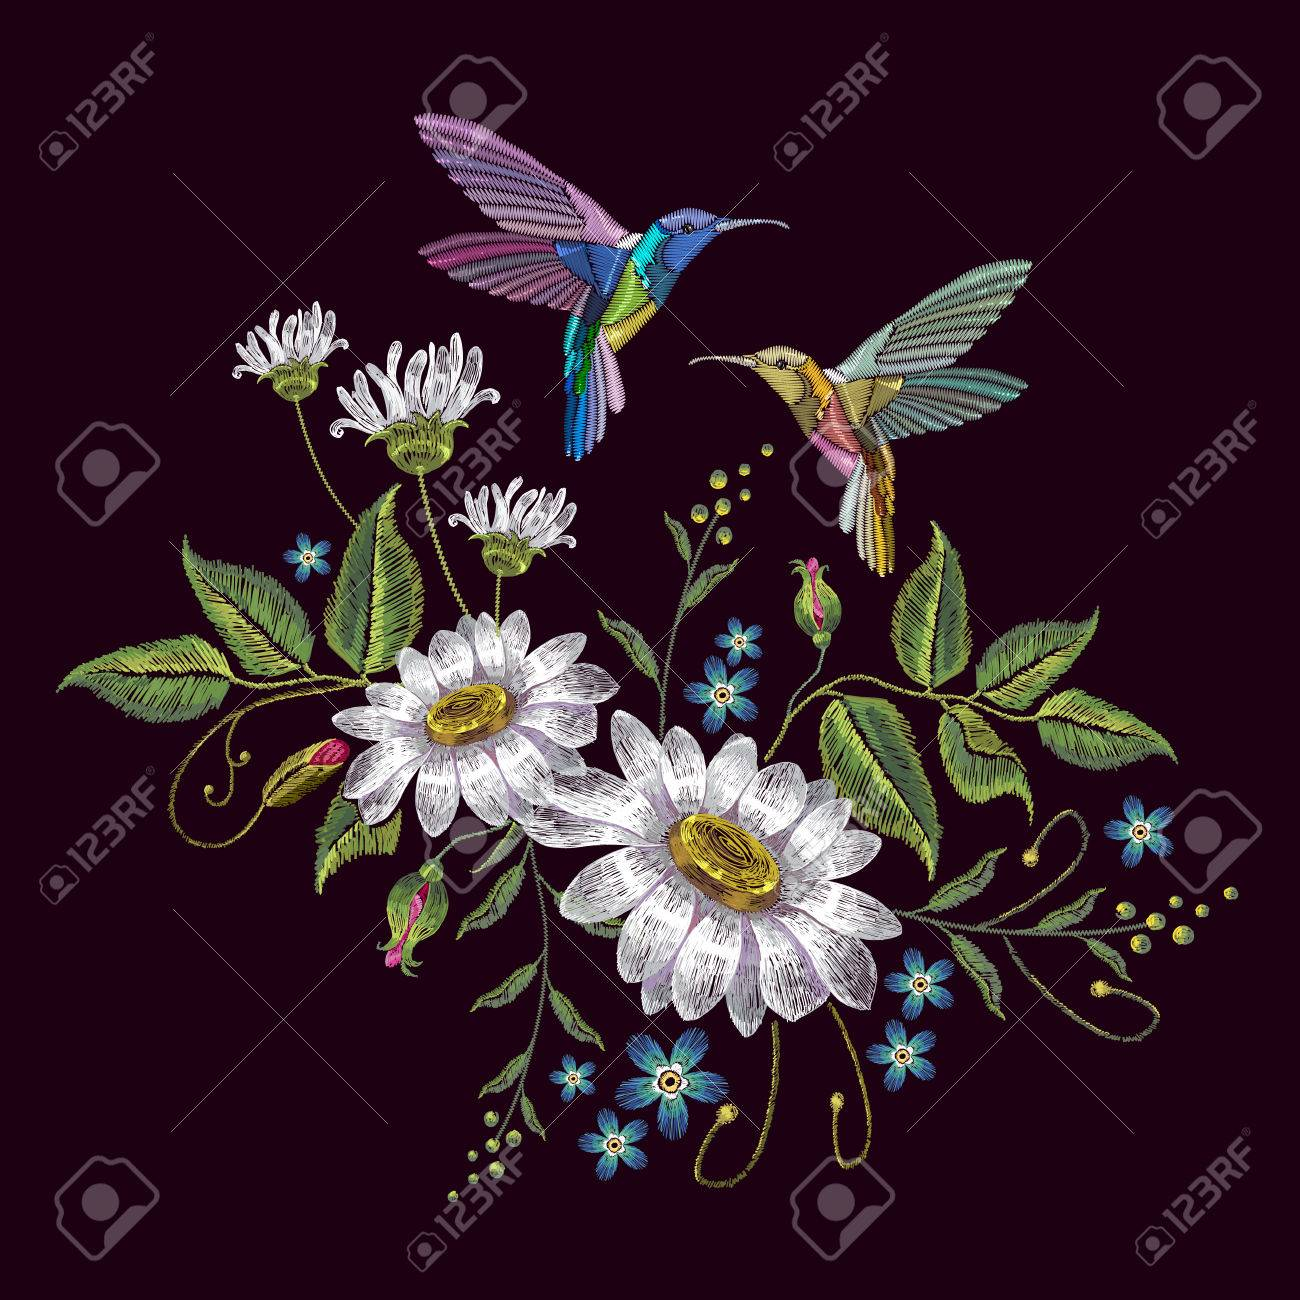 Humming bird and chamomile embroidery. Beautiful hummingbirds and white chamomile embroidery on black background. Template for clothes, textiles, t-shirt design - 78598397